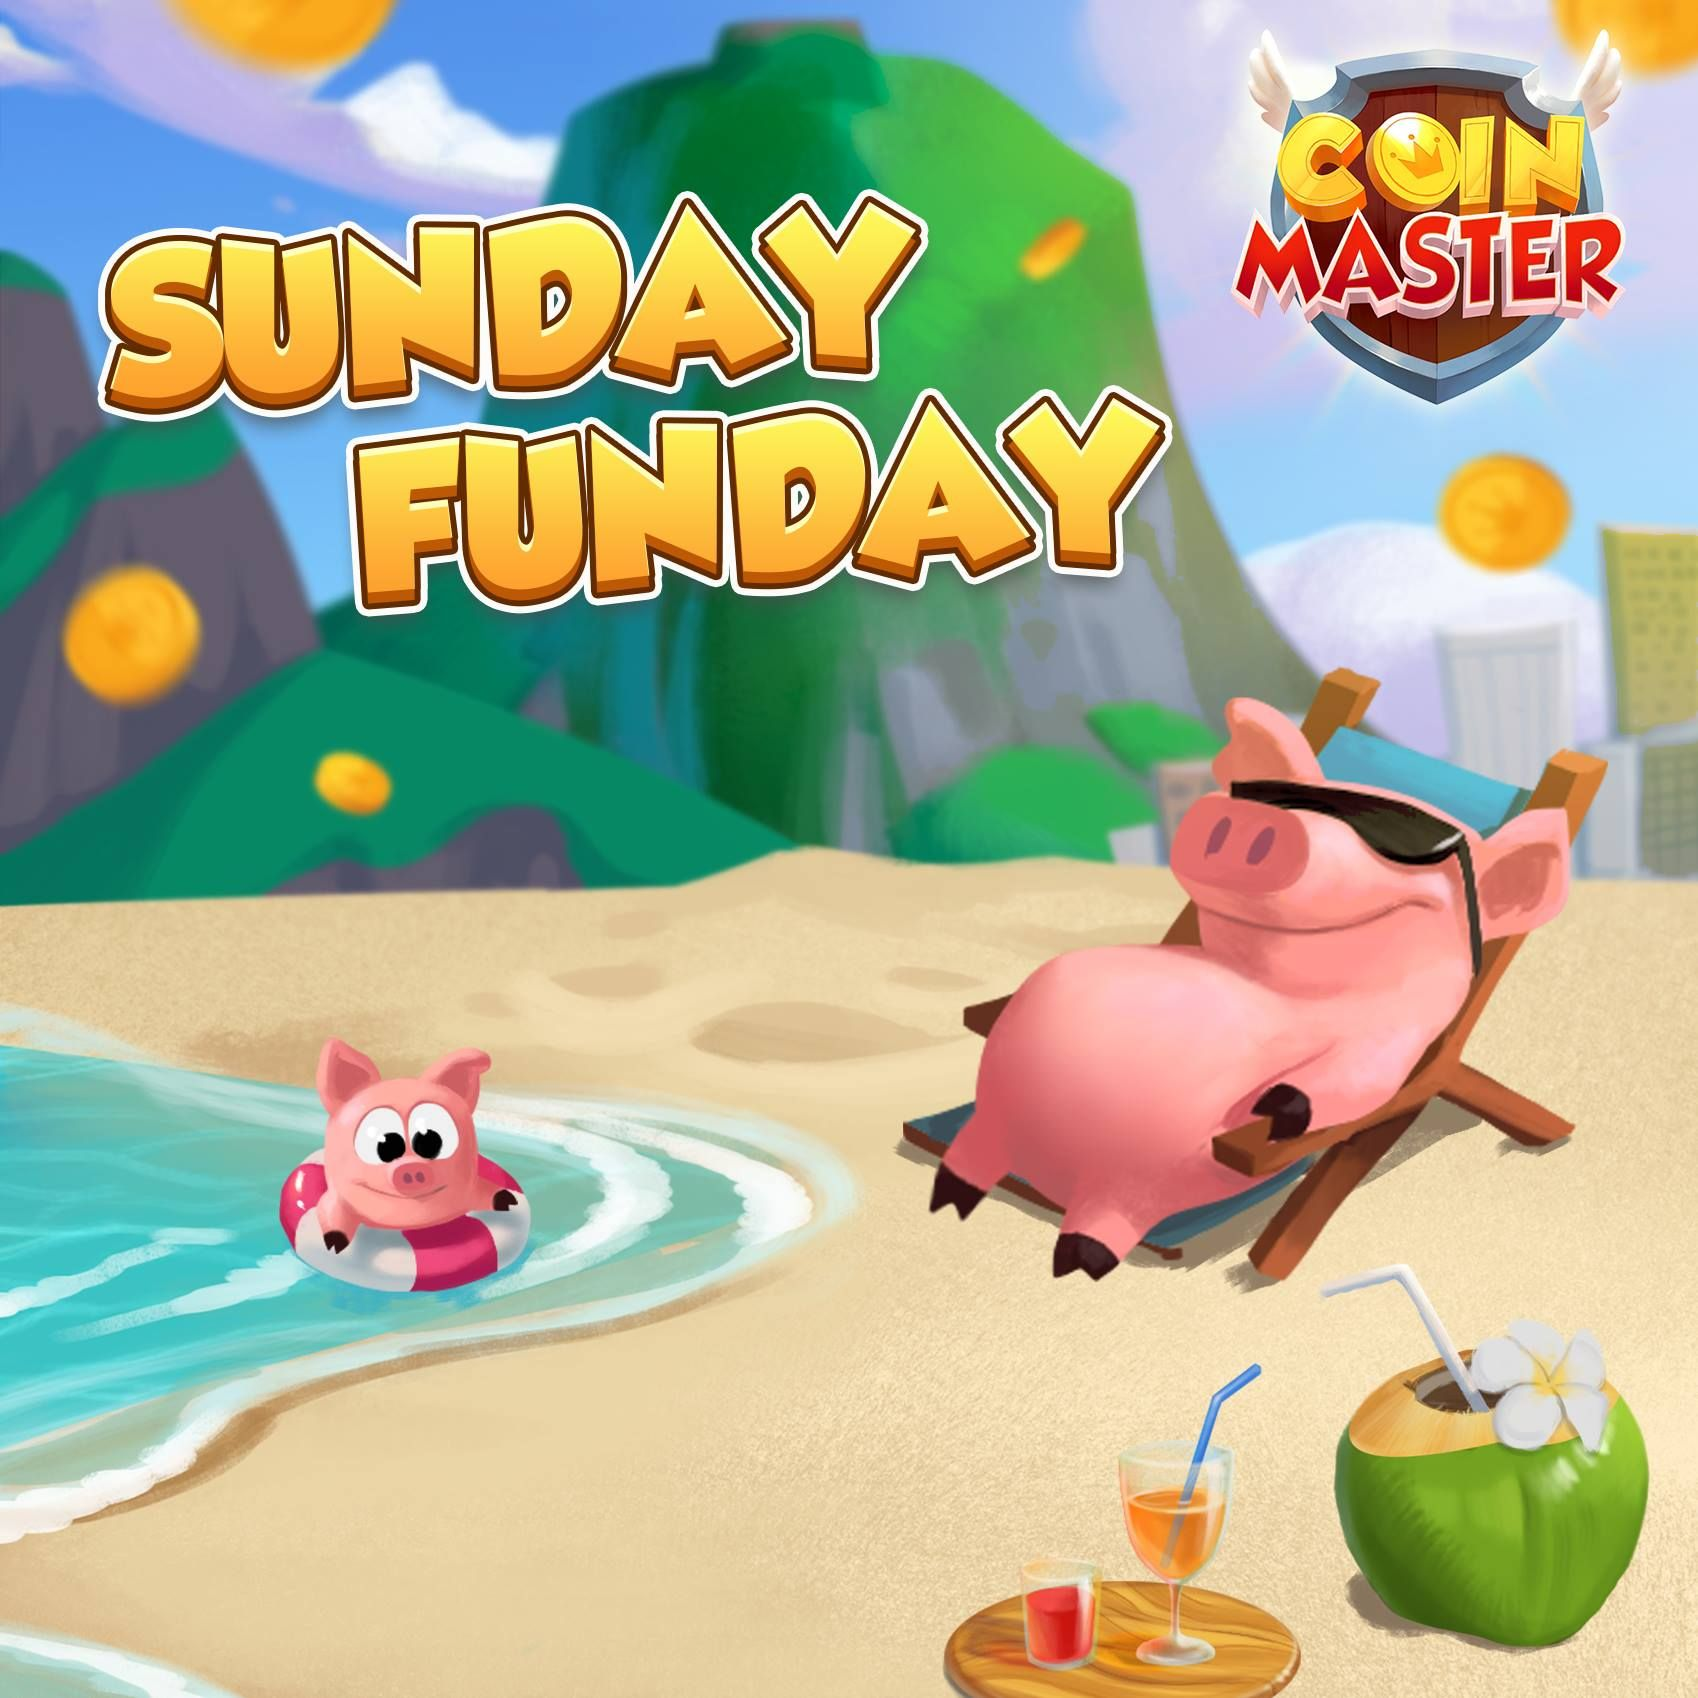 Coin Master Sunday Free Spins Enjoy Some Free Spins Coin Master Sunday Funda Coin Master Hack Coins Master